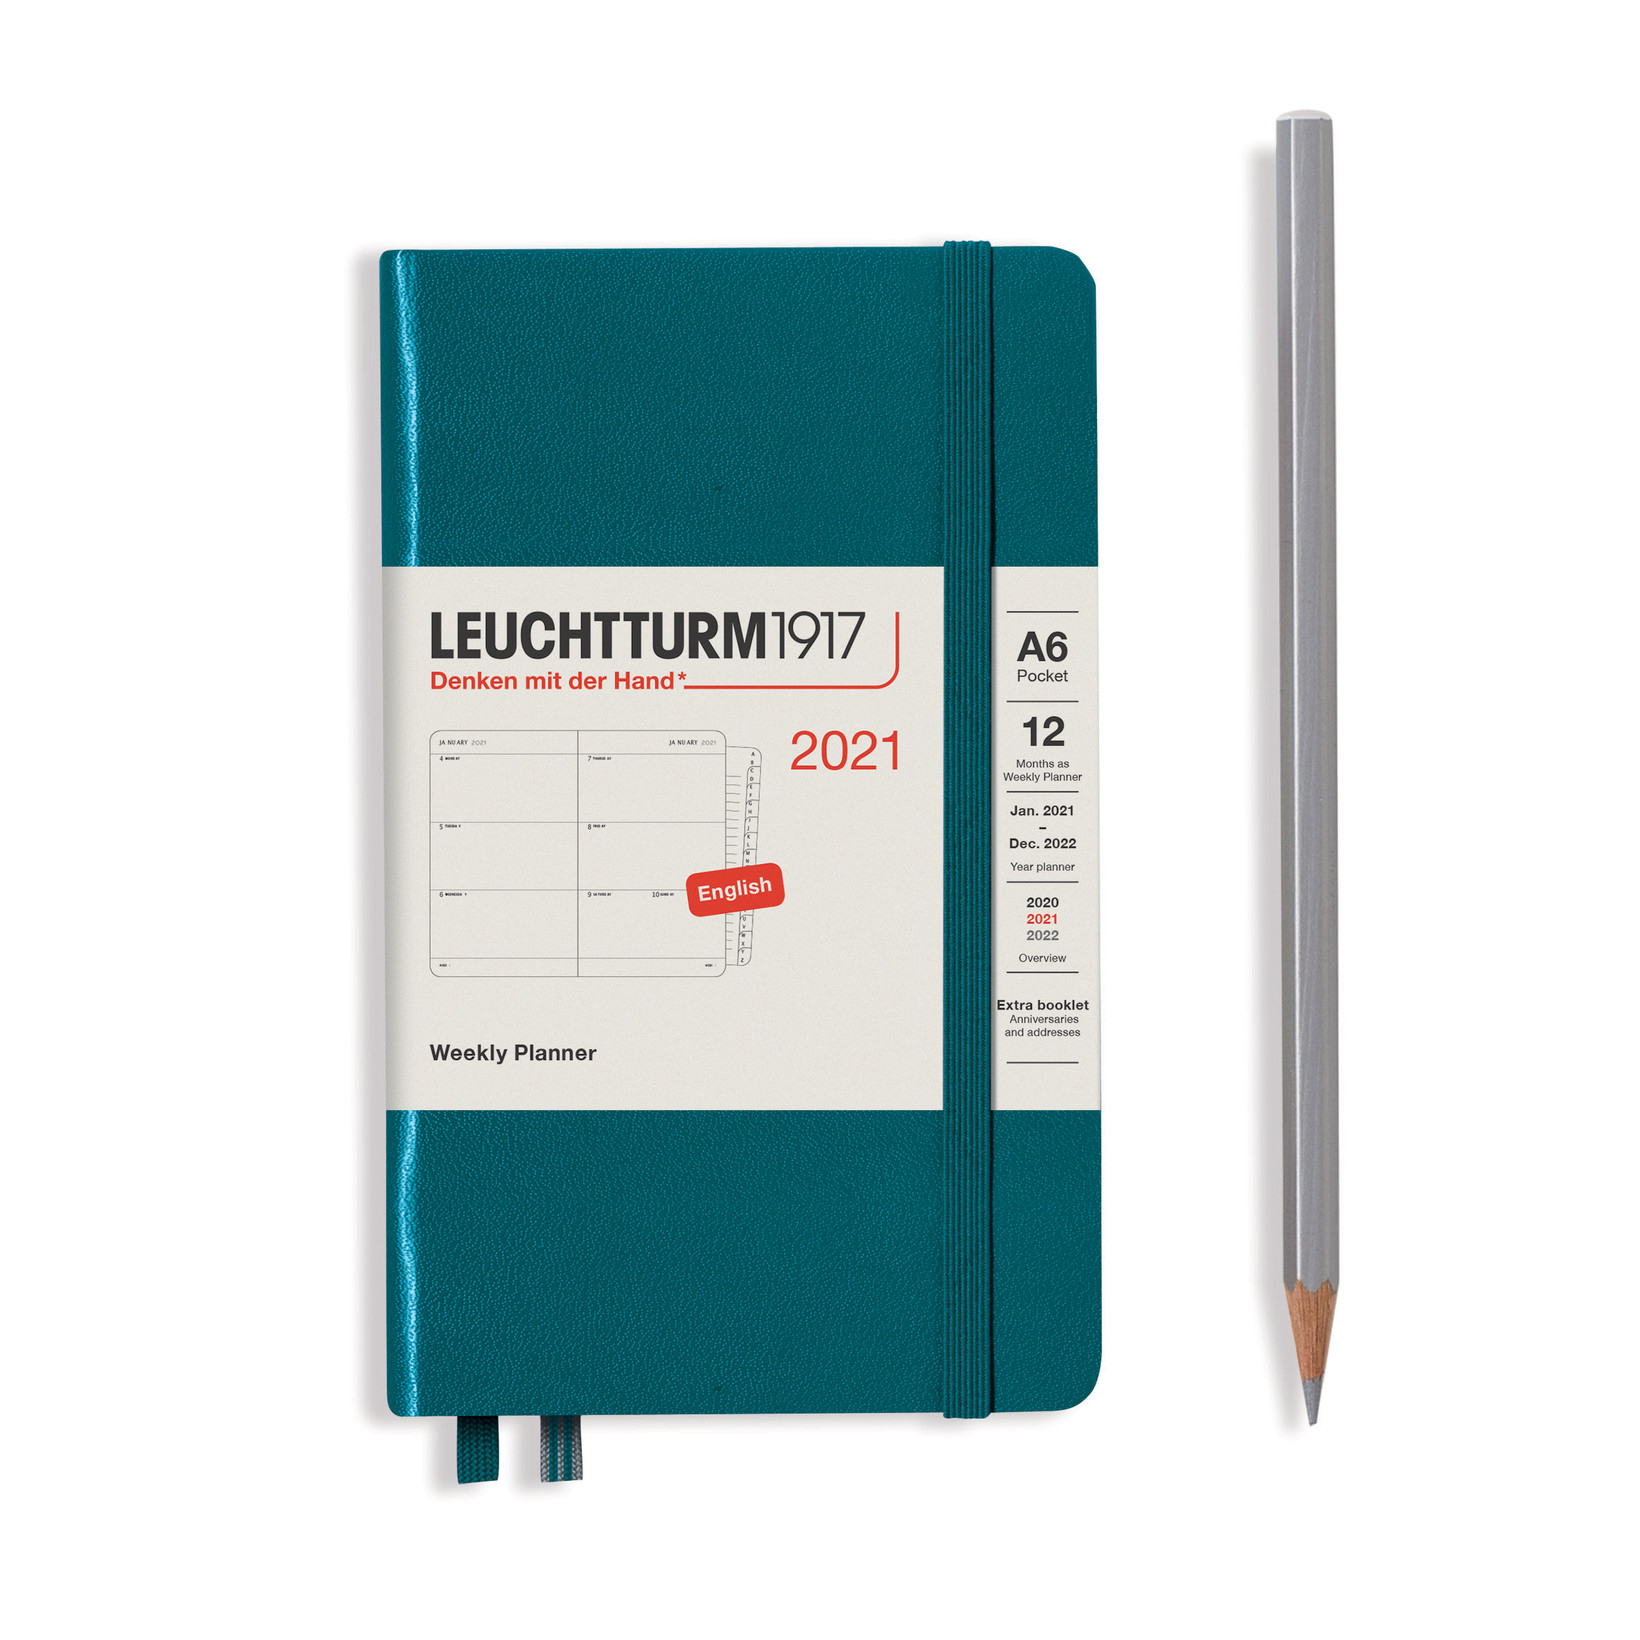 Weekly Planner Pocket (A6) 2021, With Booklet, Pacific pertaining to Monthly Planner 2021 With Pockets